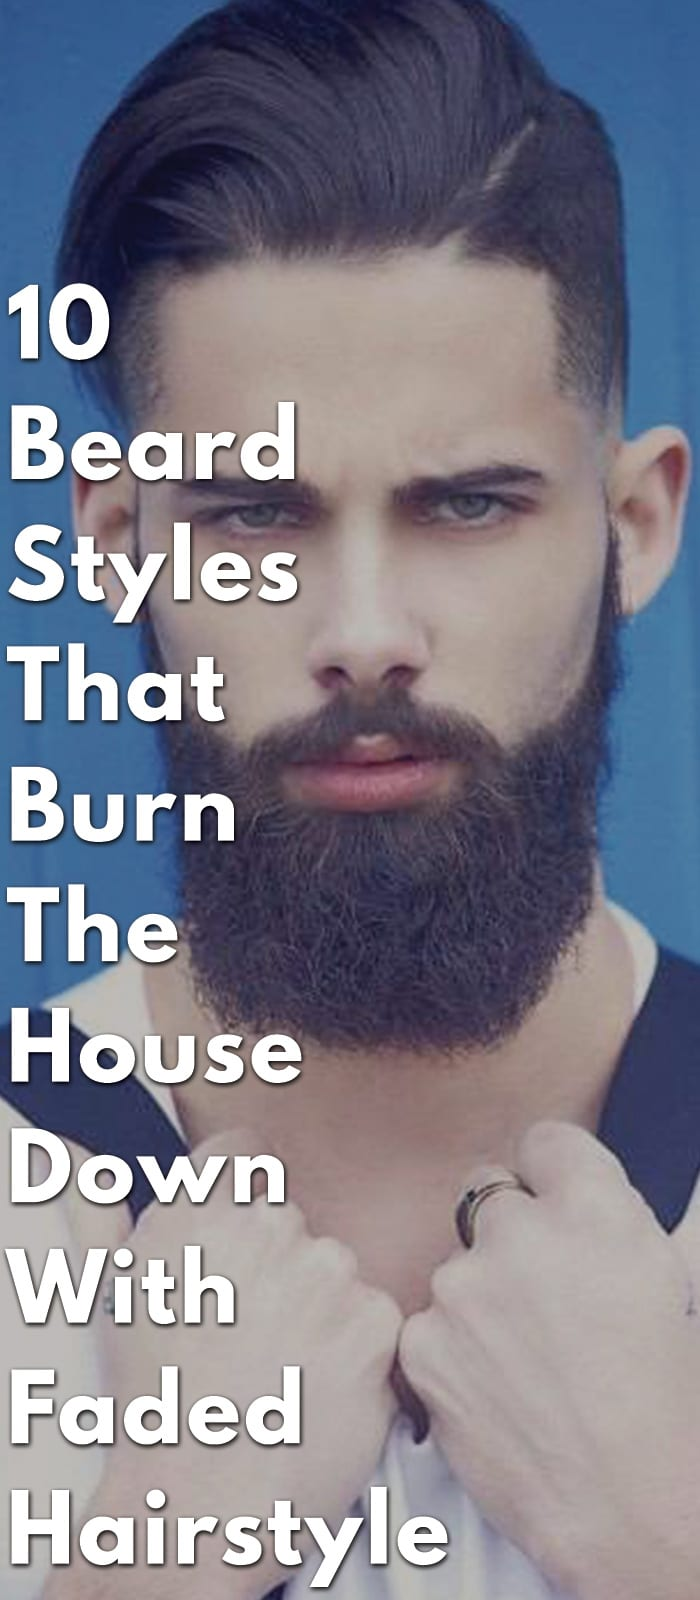 10-Beard-Styles-That-Burn-The-House-Down-With-Faded-Hairstyle